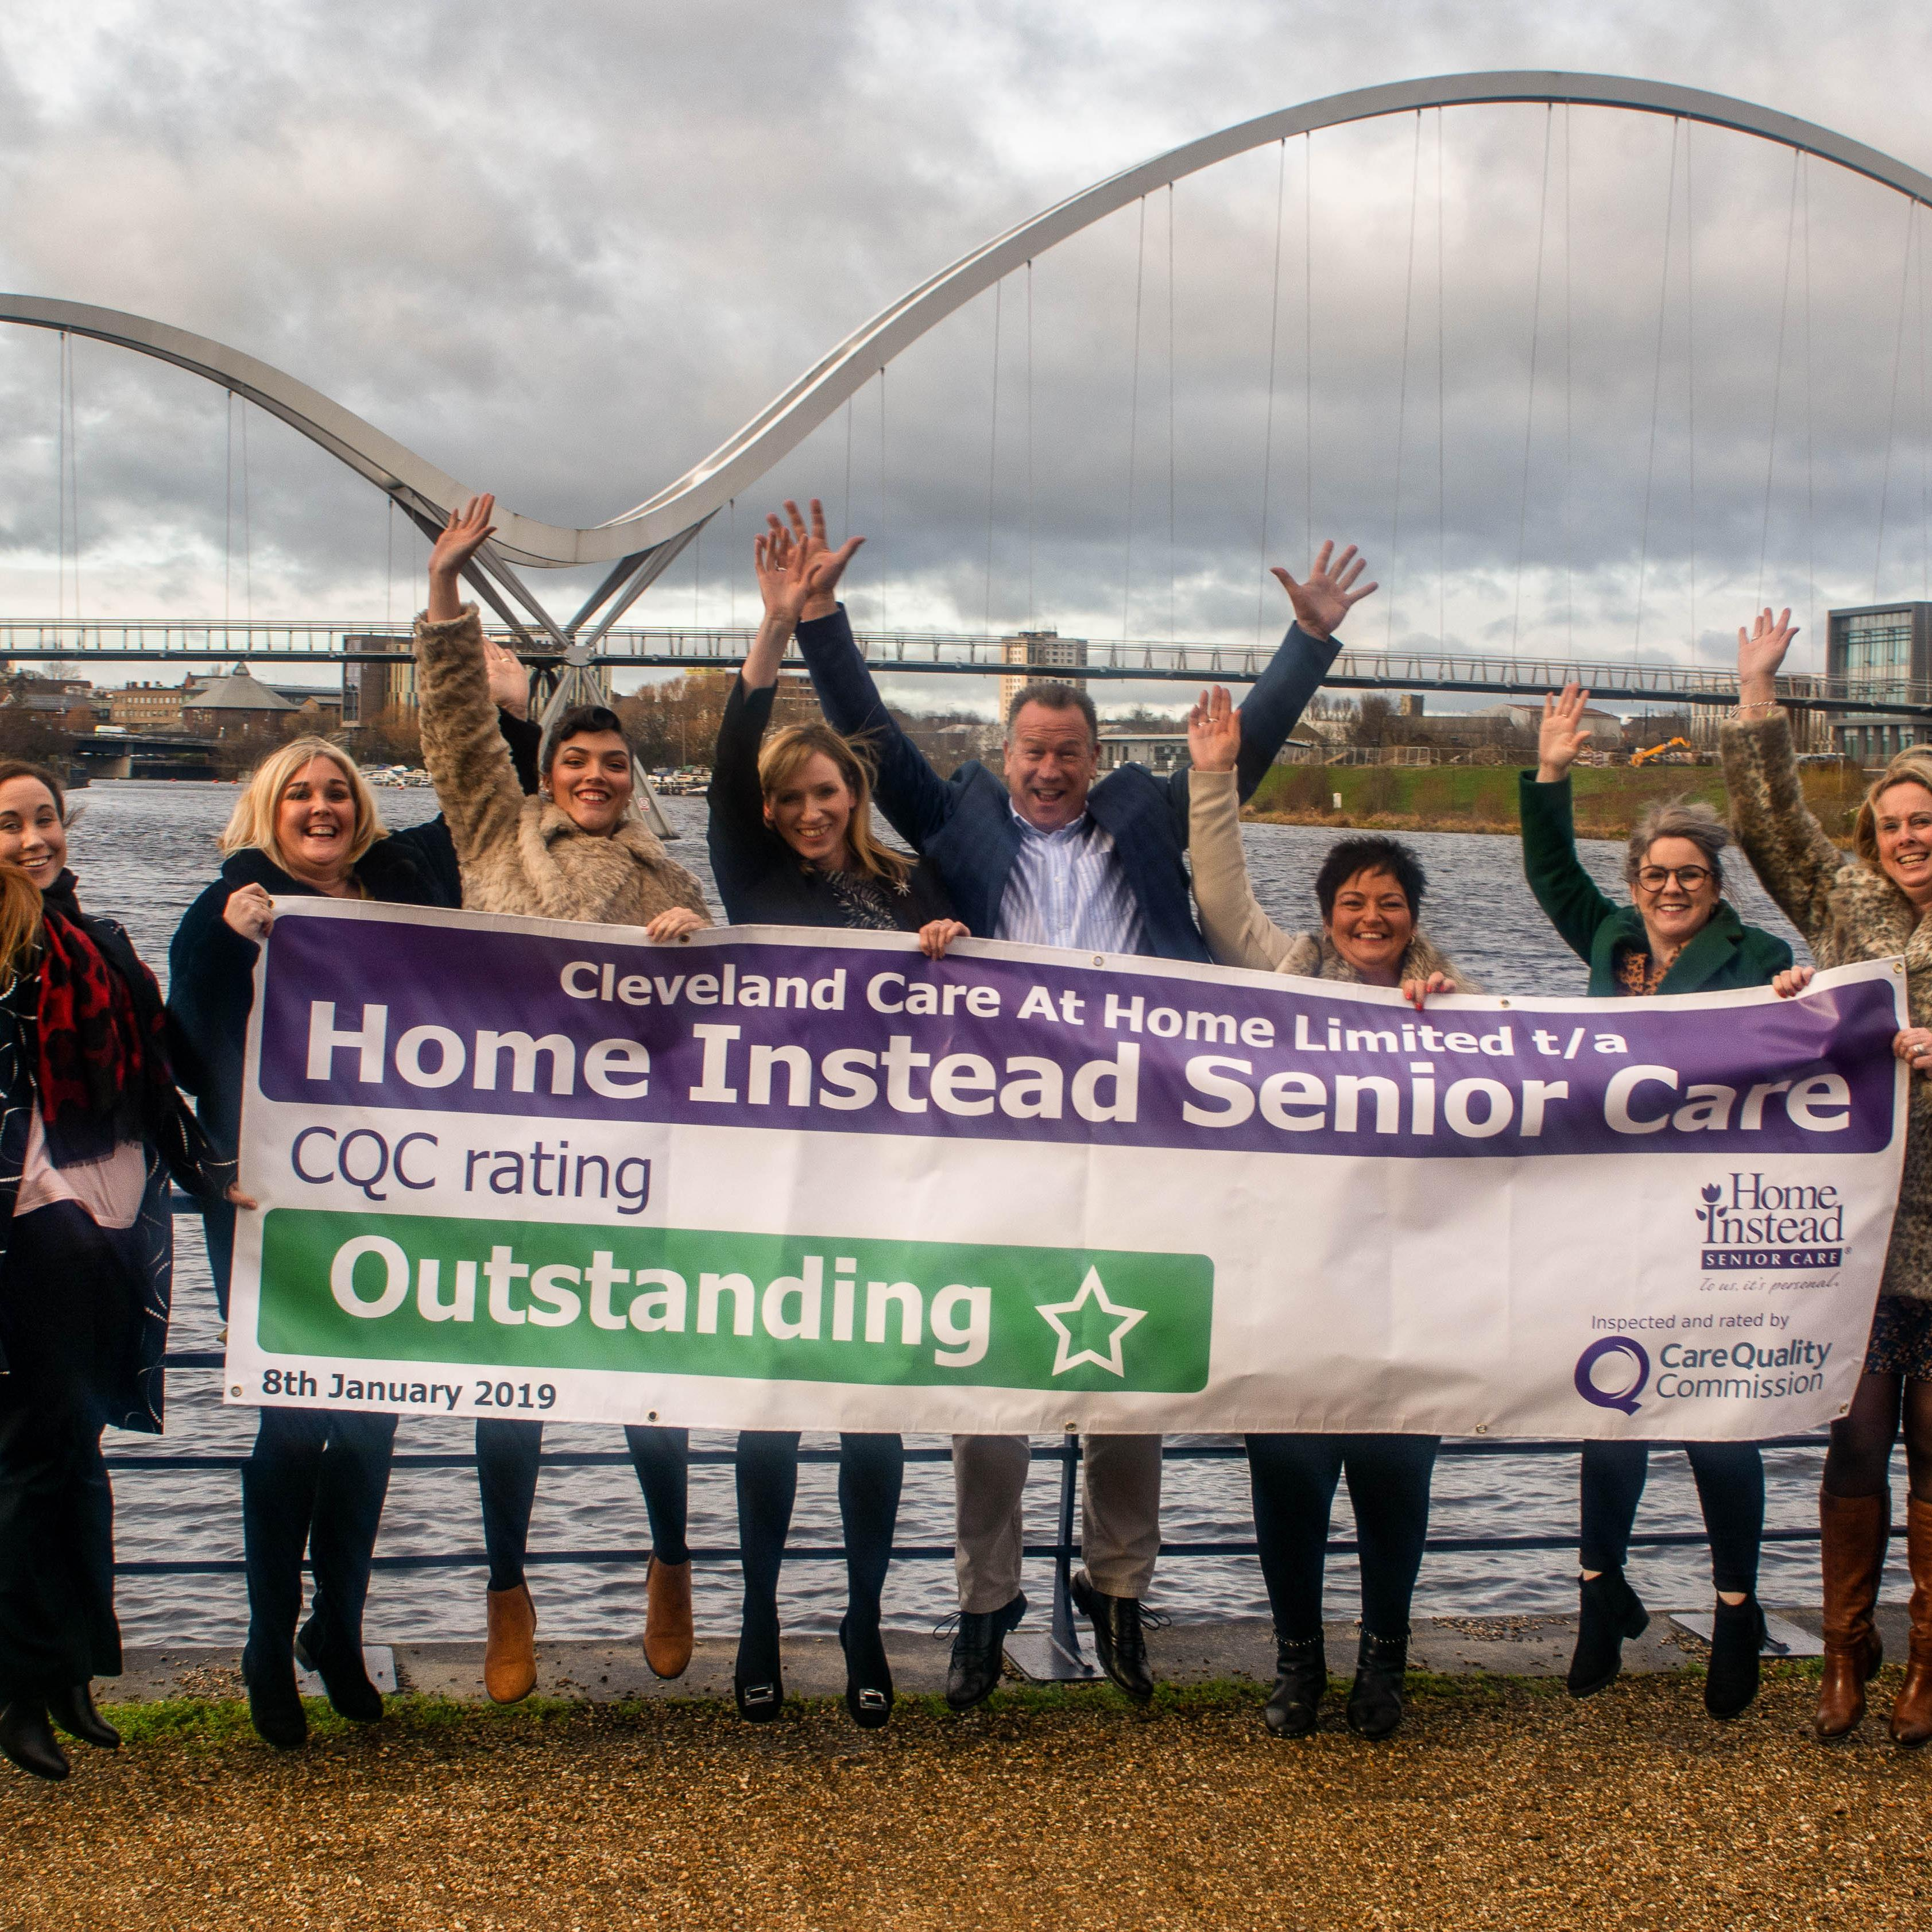 Home Instead Cleveland happy with OUTSTANDING CQC award